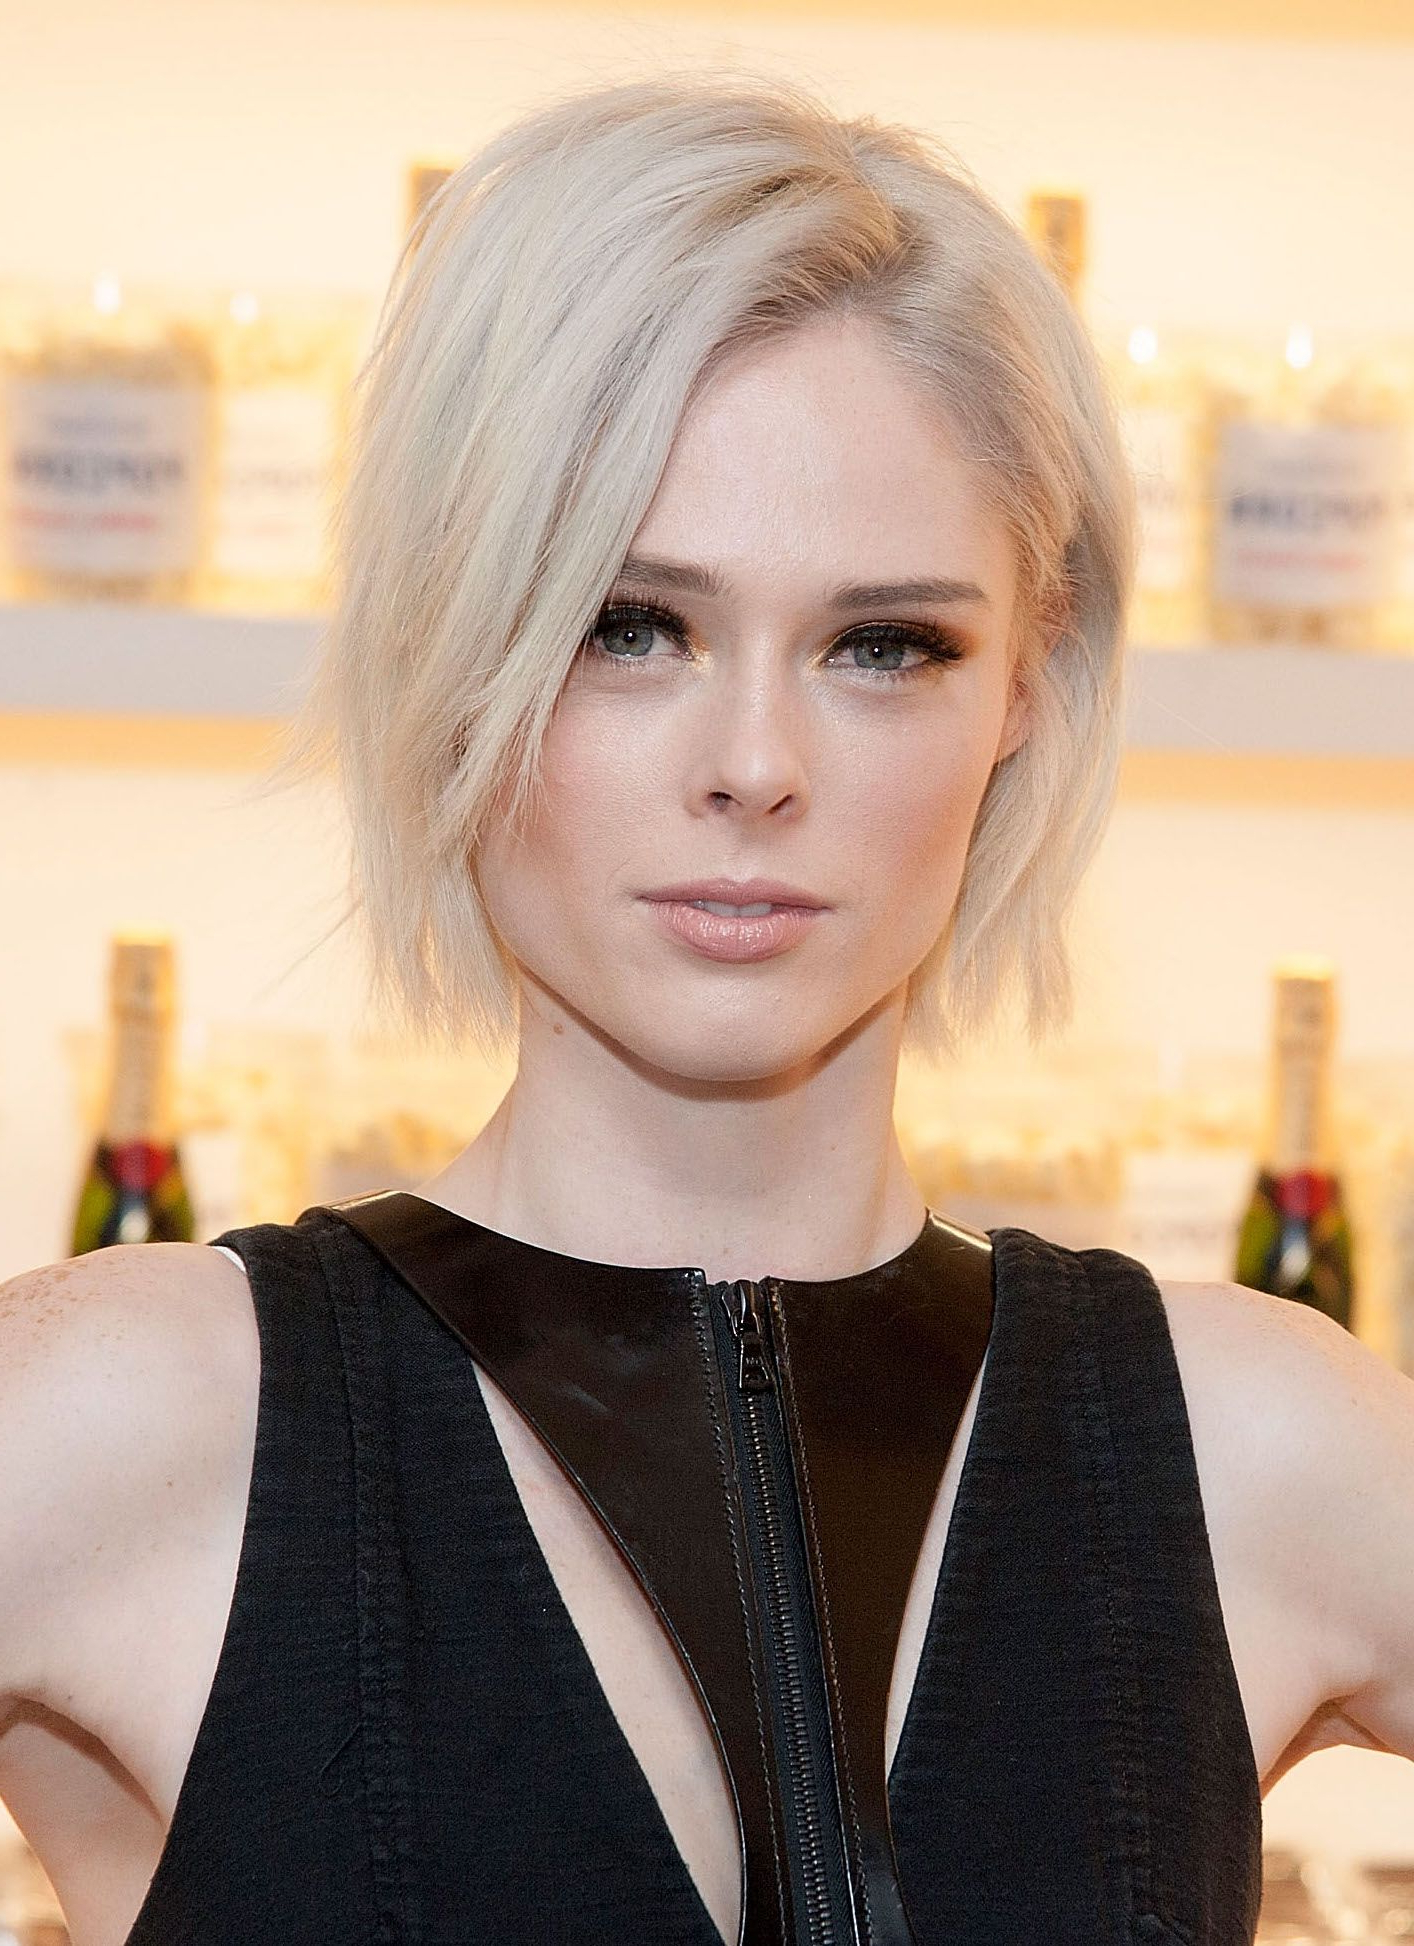 45 Bob Hairstyles For 2019 – Bob Haircuts To Copy This Year Throughout Trendy And Sleek Bob Haircuts (View 7 of 20)